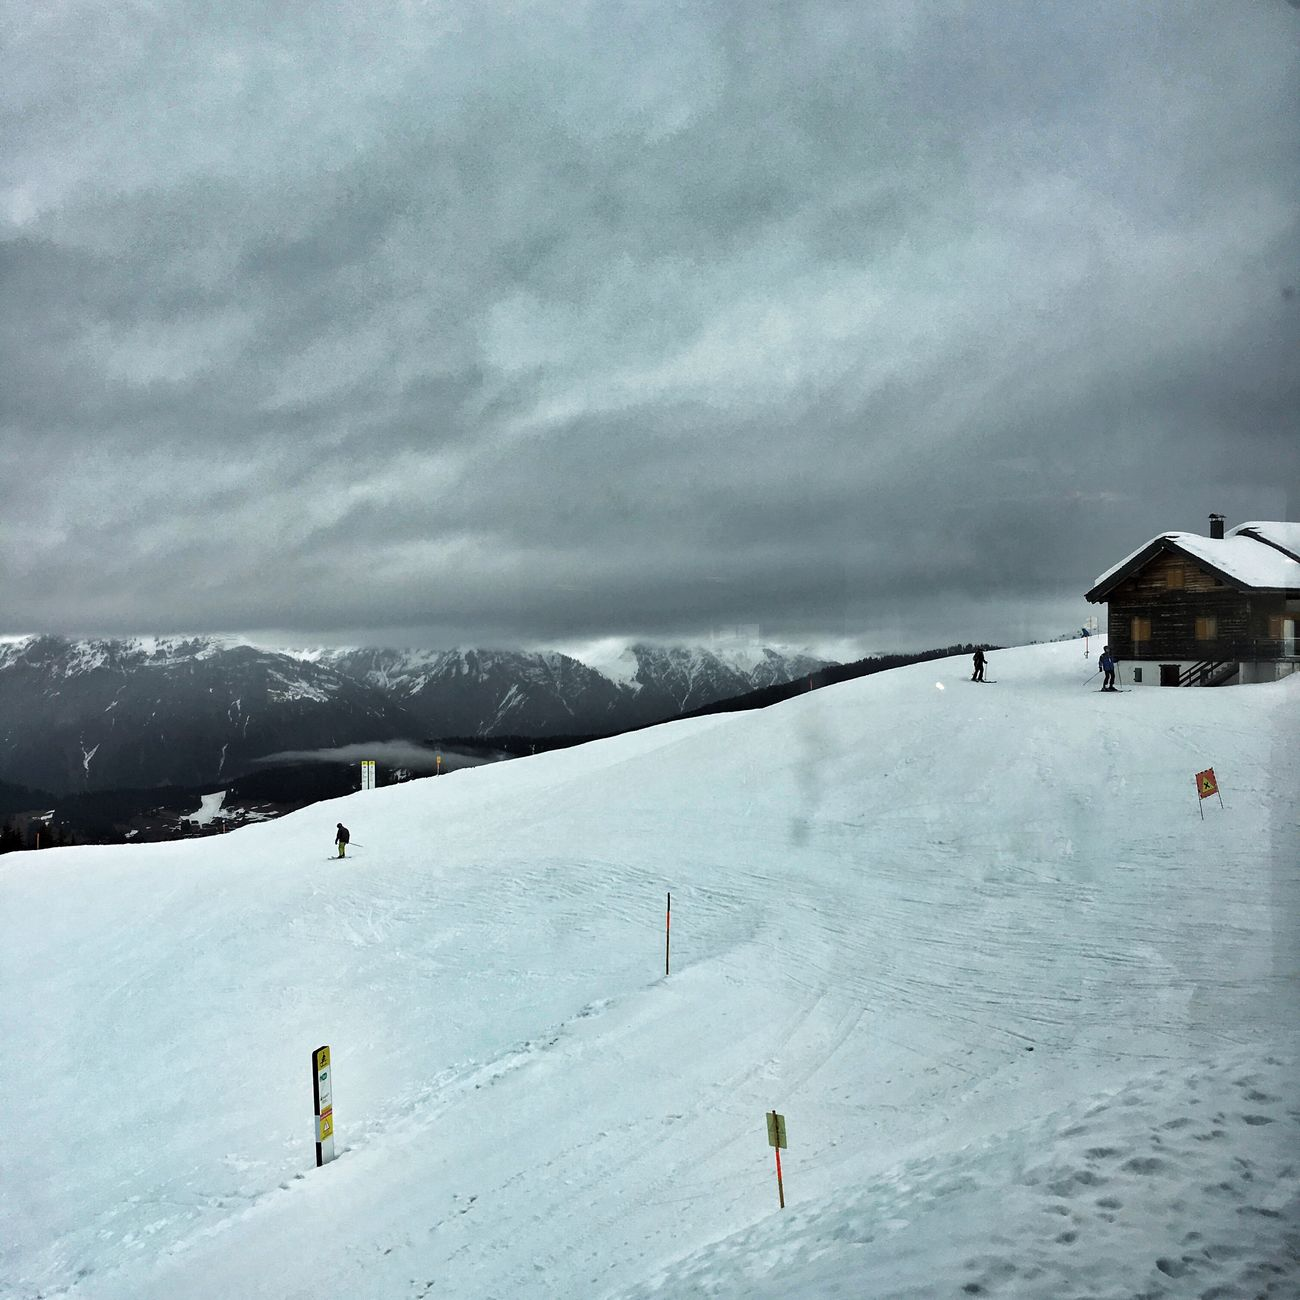 Austria Montafon Schruns Winter Snow Cold Temperature Weather Mountain Nature Scenics Mountain Range Outdoors Beauty In Nature Tranquility Sky Cloud - Sky Landscape Tranquil Scene Ski Holiday Day Frozen Built Structure